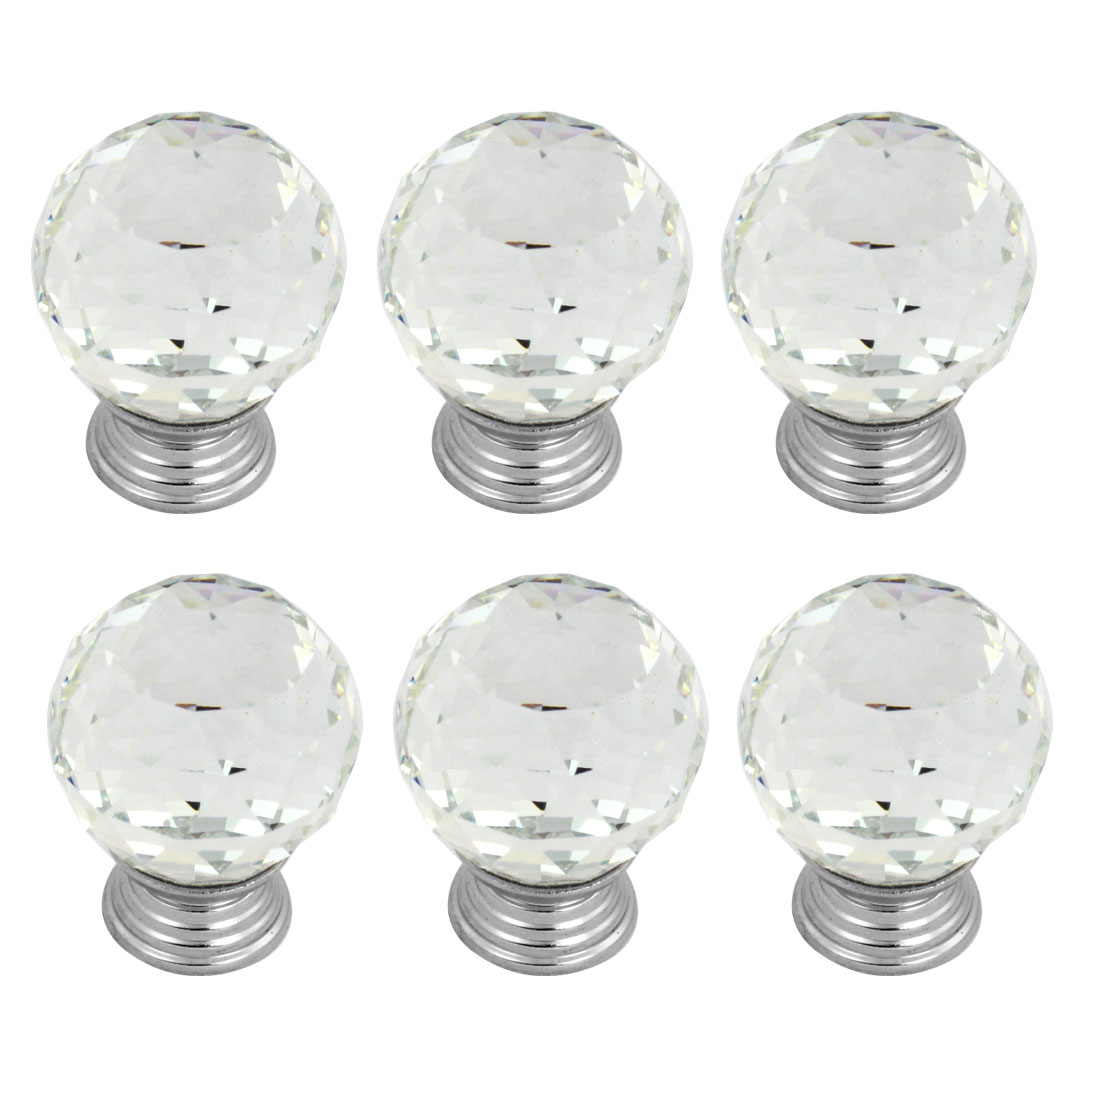 "1.2"" Faux Crystal Handle Cabinet Cupboard Drawer Door Pull Ball Knob 6 Pcs"